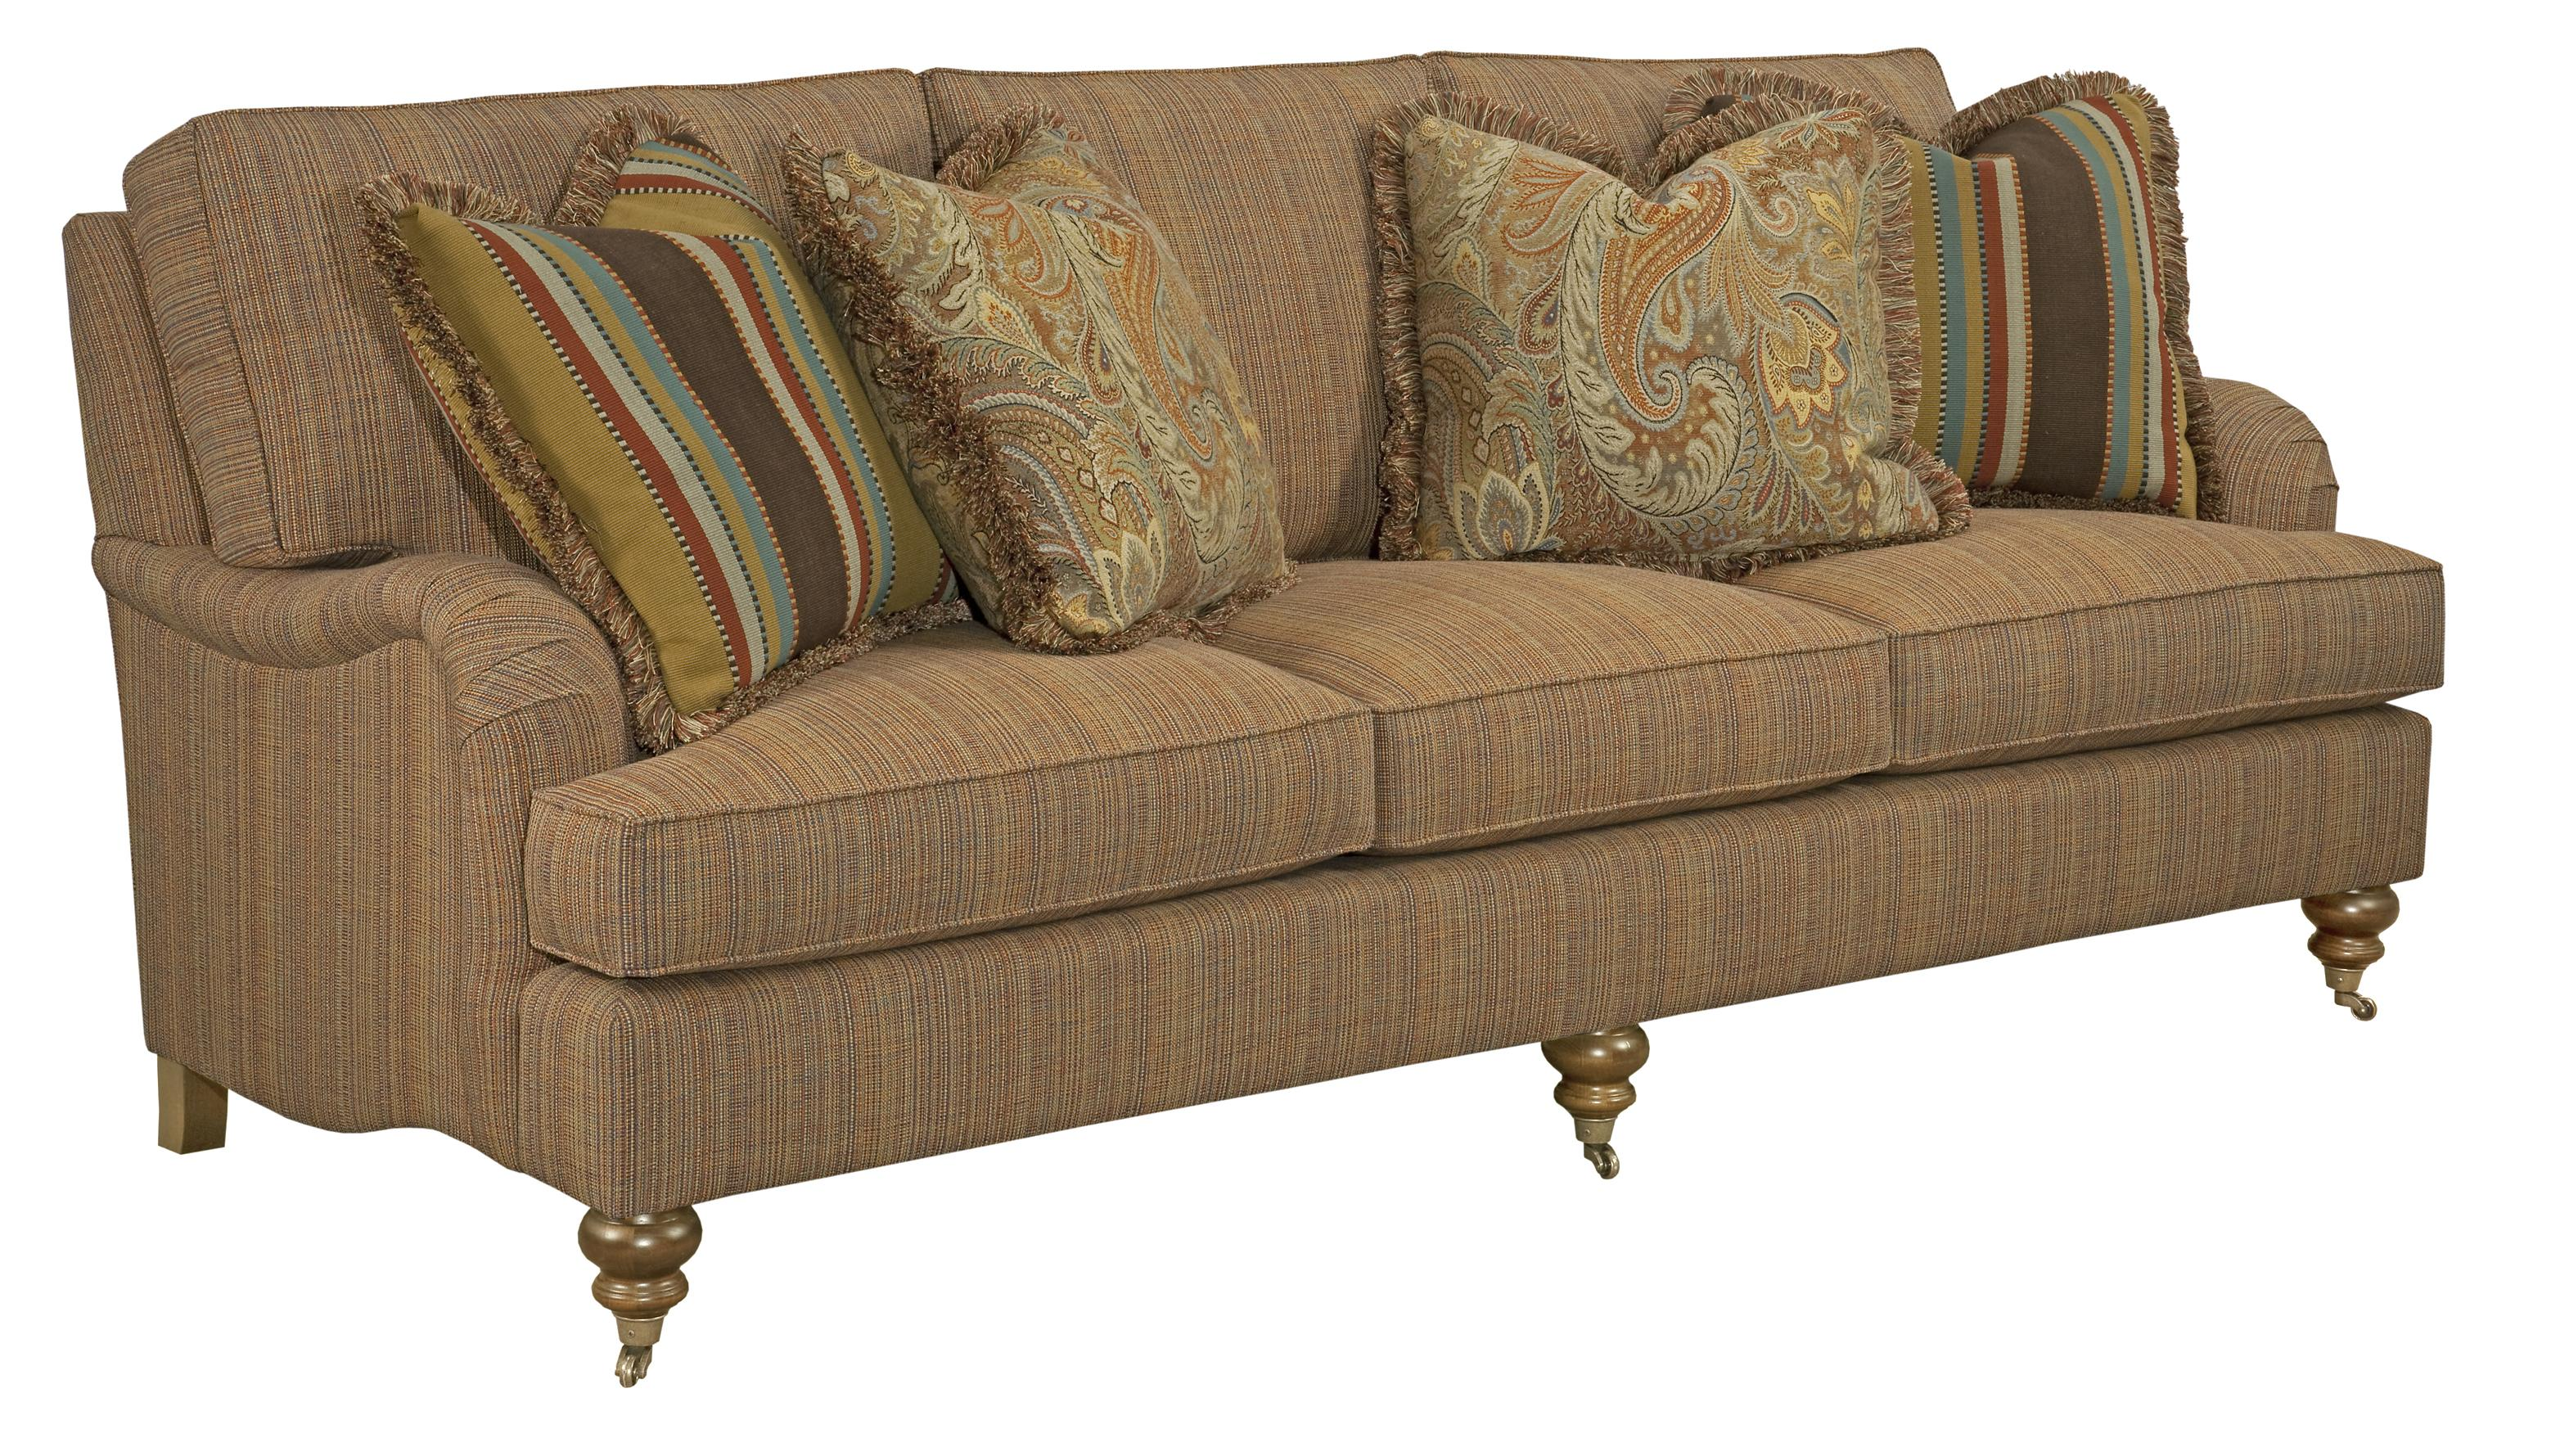 Merveilleux Traditional Sofa With English Arms And Turned Legs